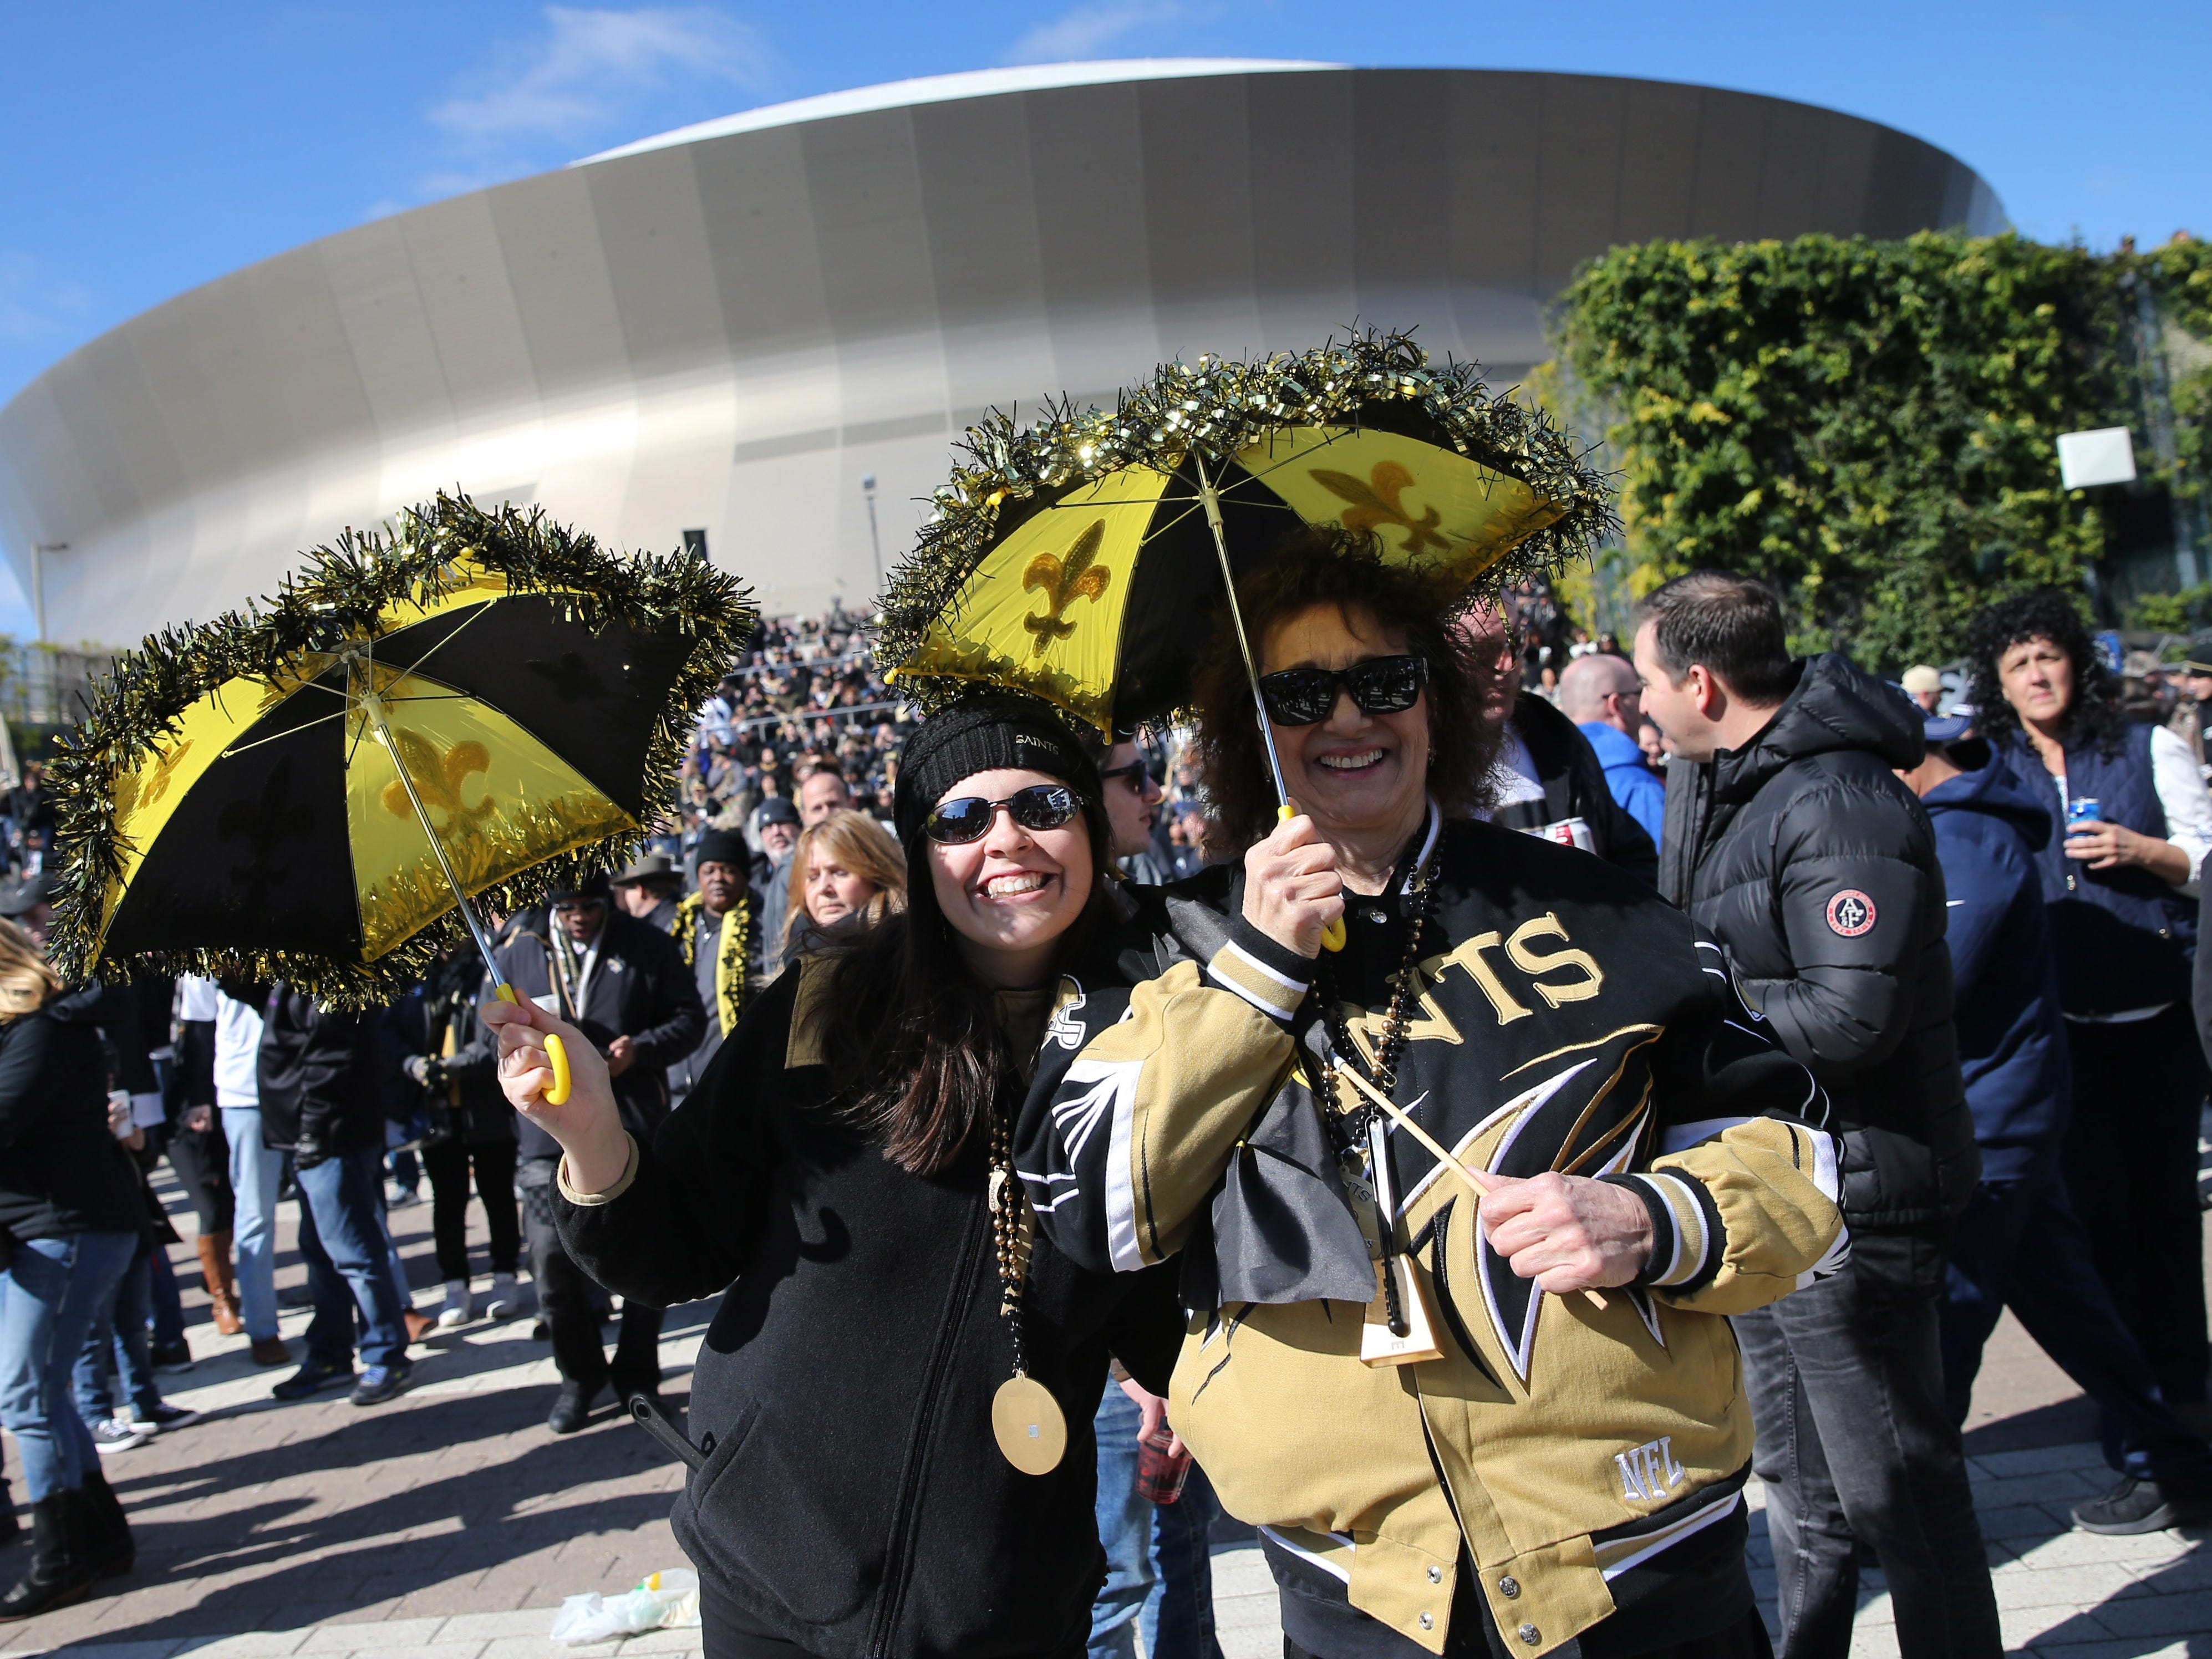 New Orleans Saints fans Erin Patin and Jackie Gondrella of New Orleans pose outside the Mercedes-Benz Superdome before the NFC Championship game between the Saints and the Los Angeles Rams.